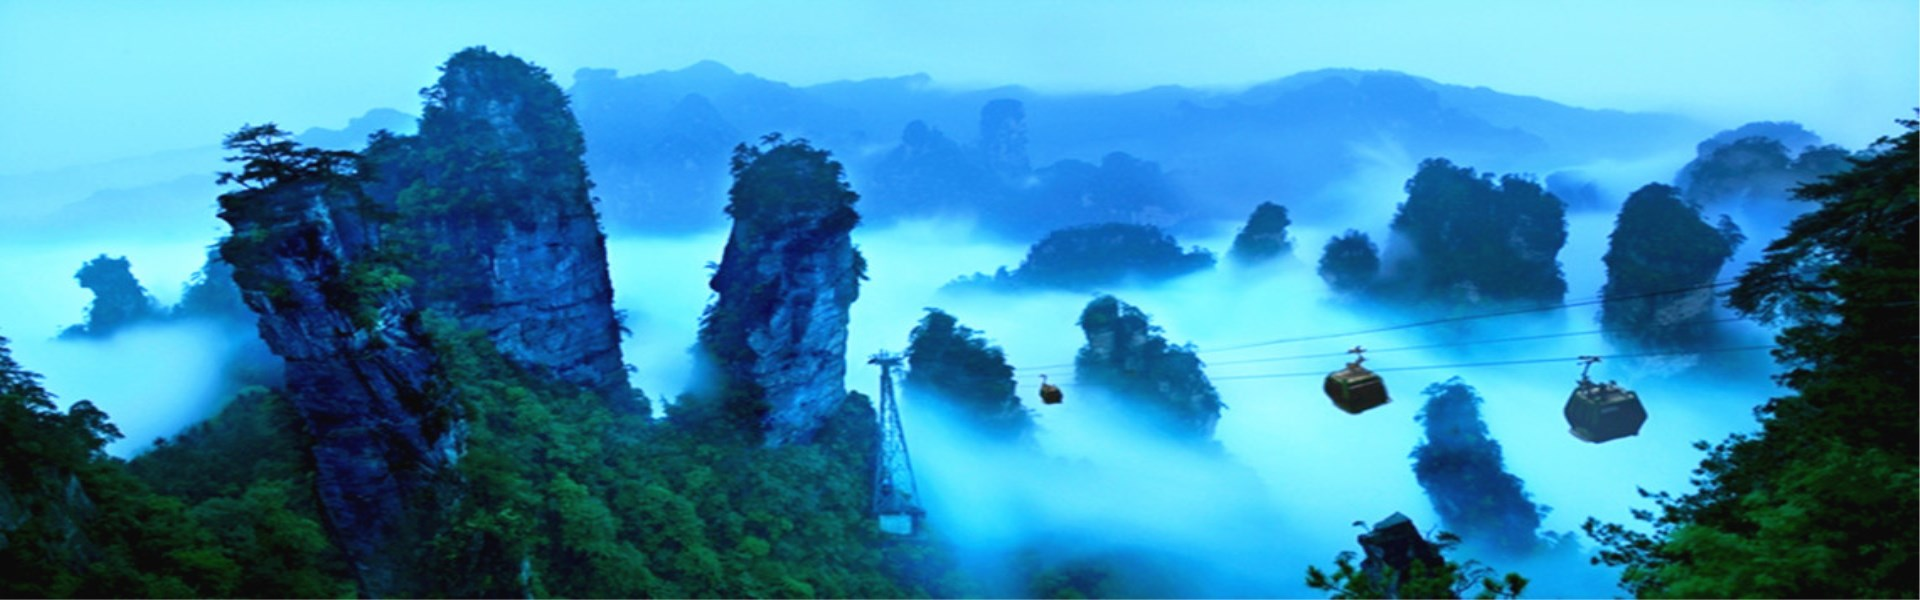 8 Days Hunan Highlights Tour